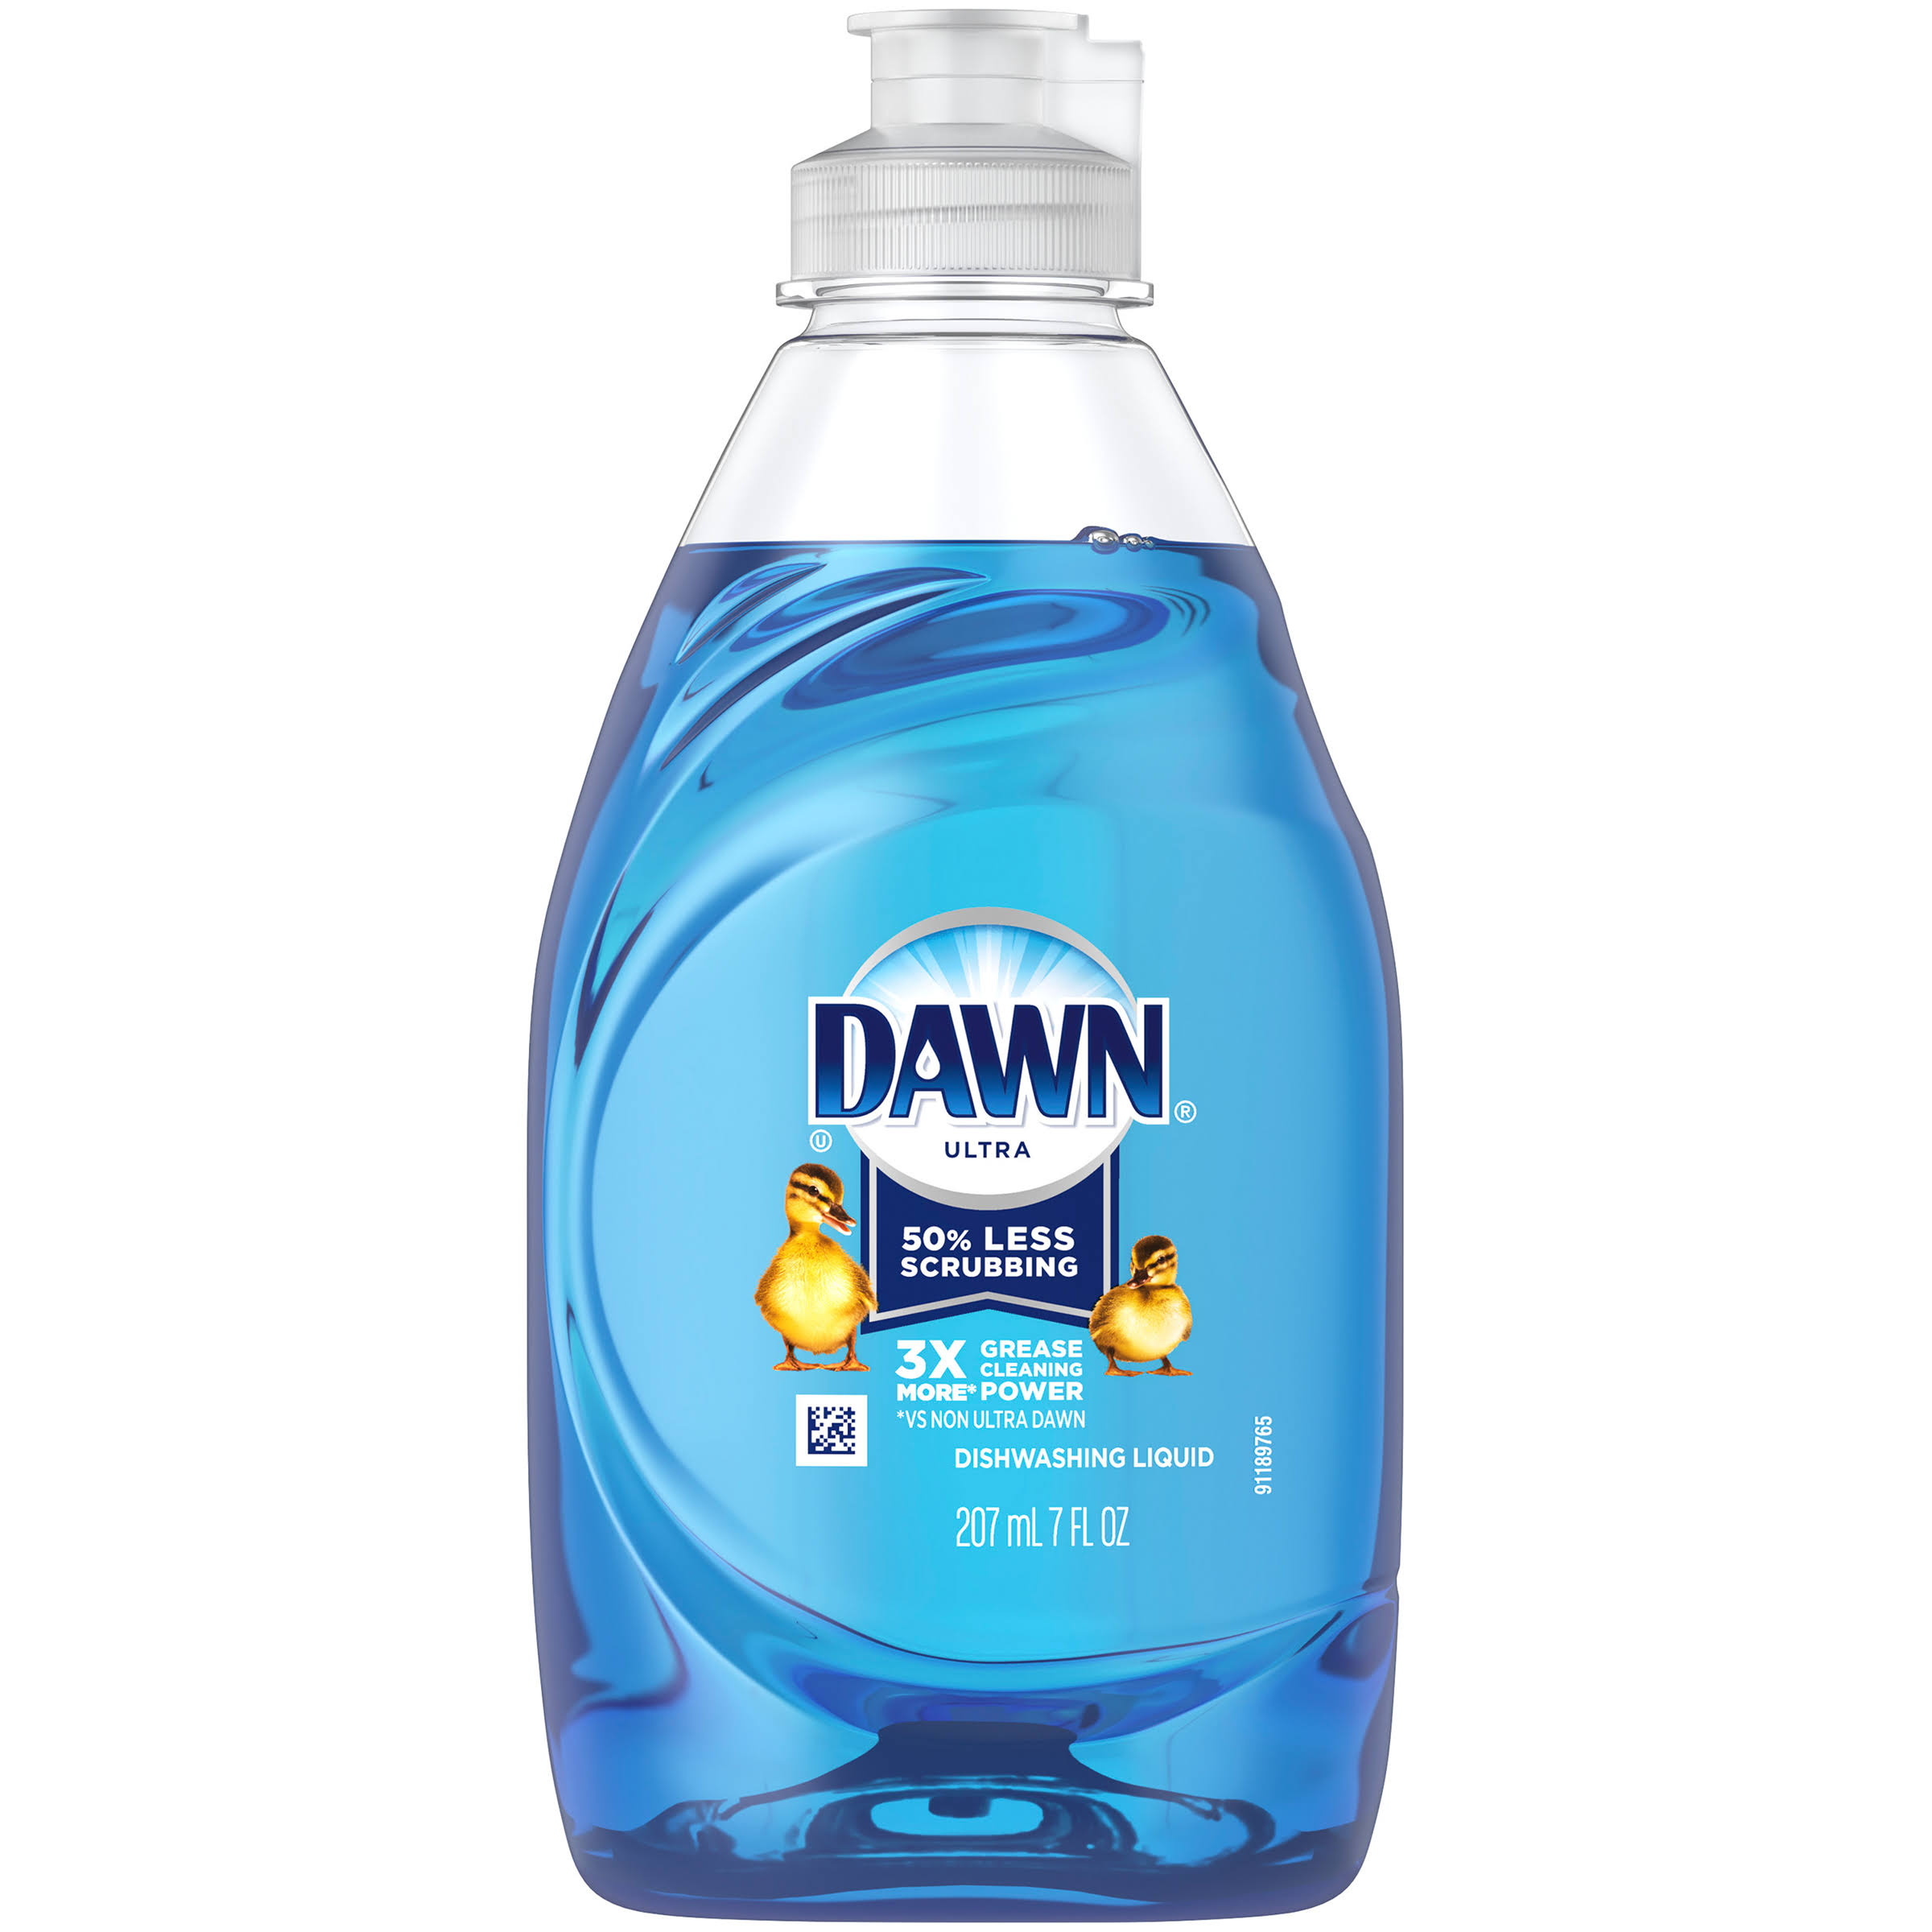 Dawn Ultra Dishwashing Liquid Dish Soap, Original Scent, 7 Fl Oz